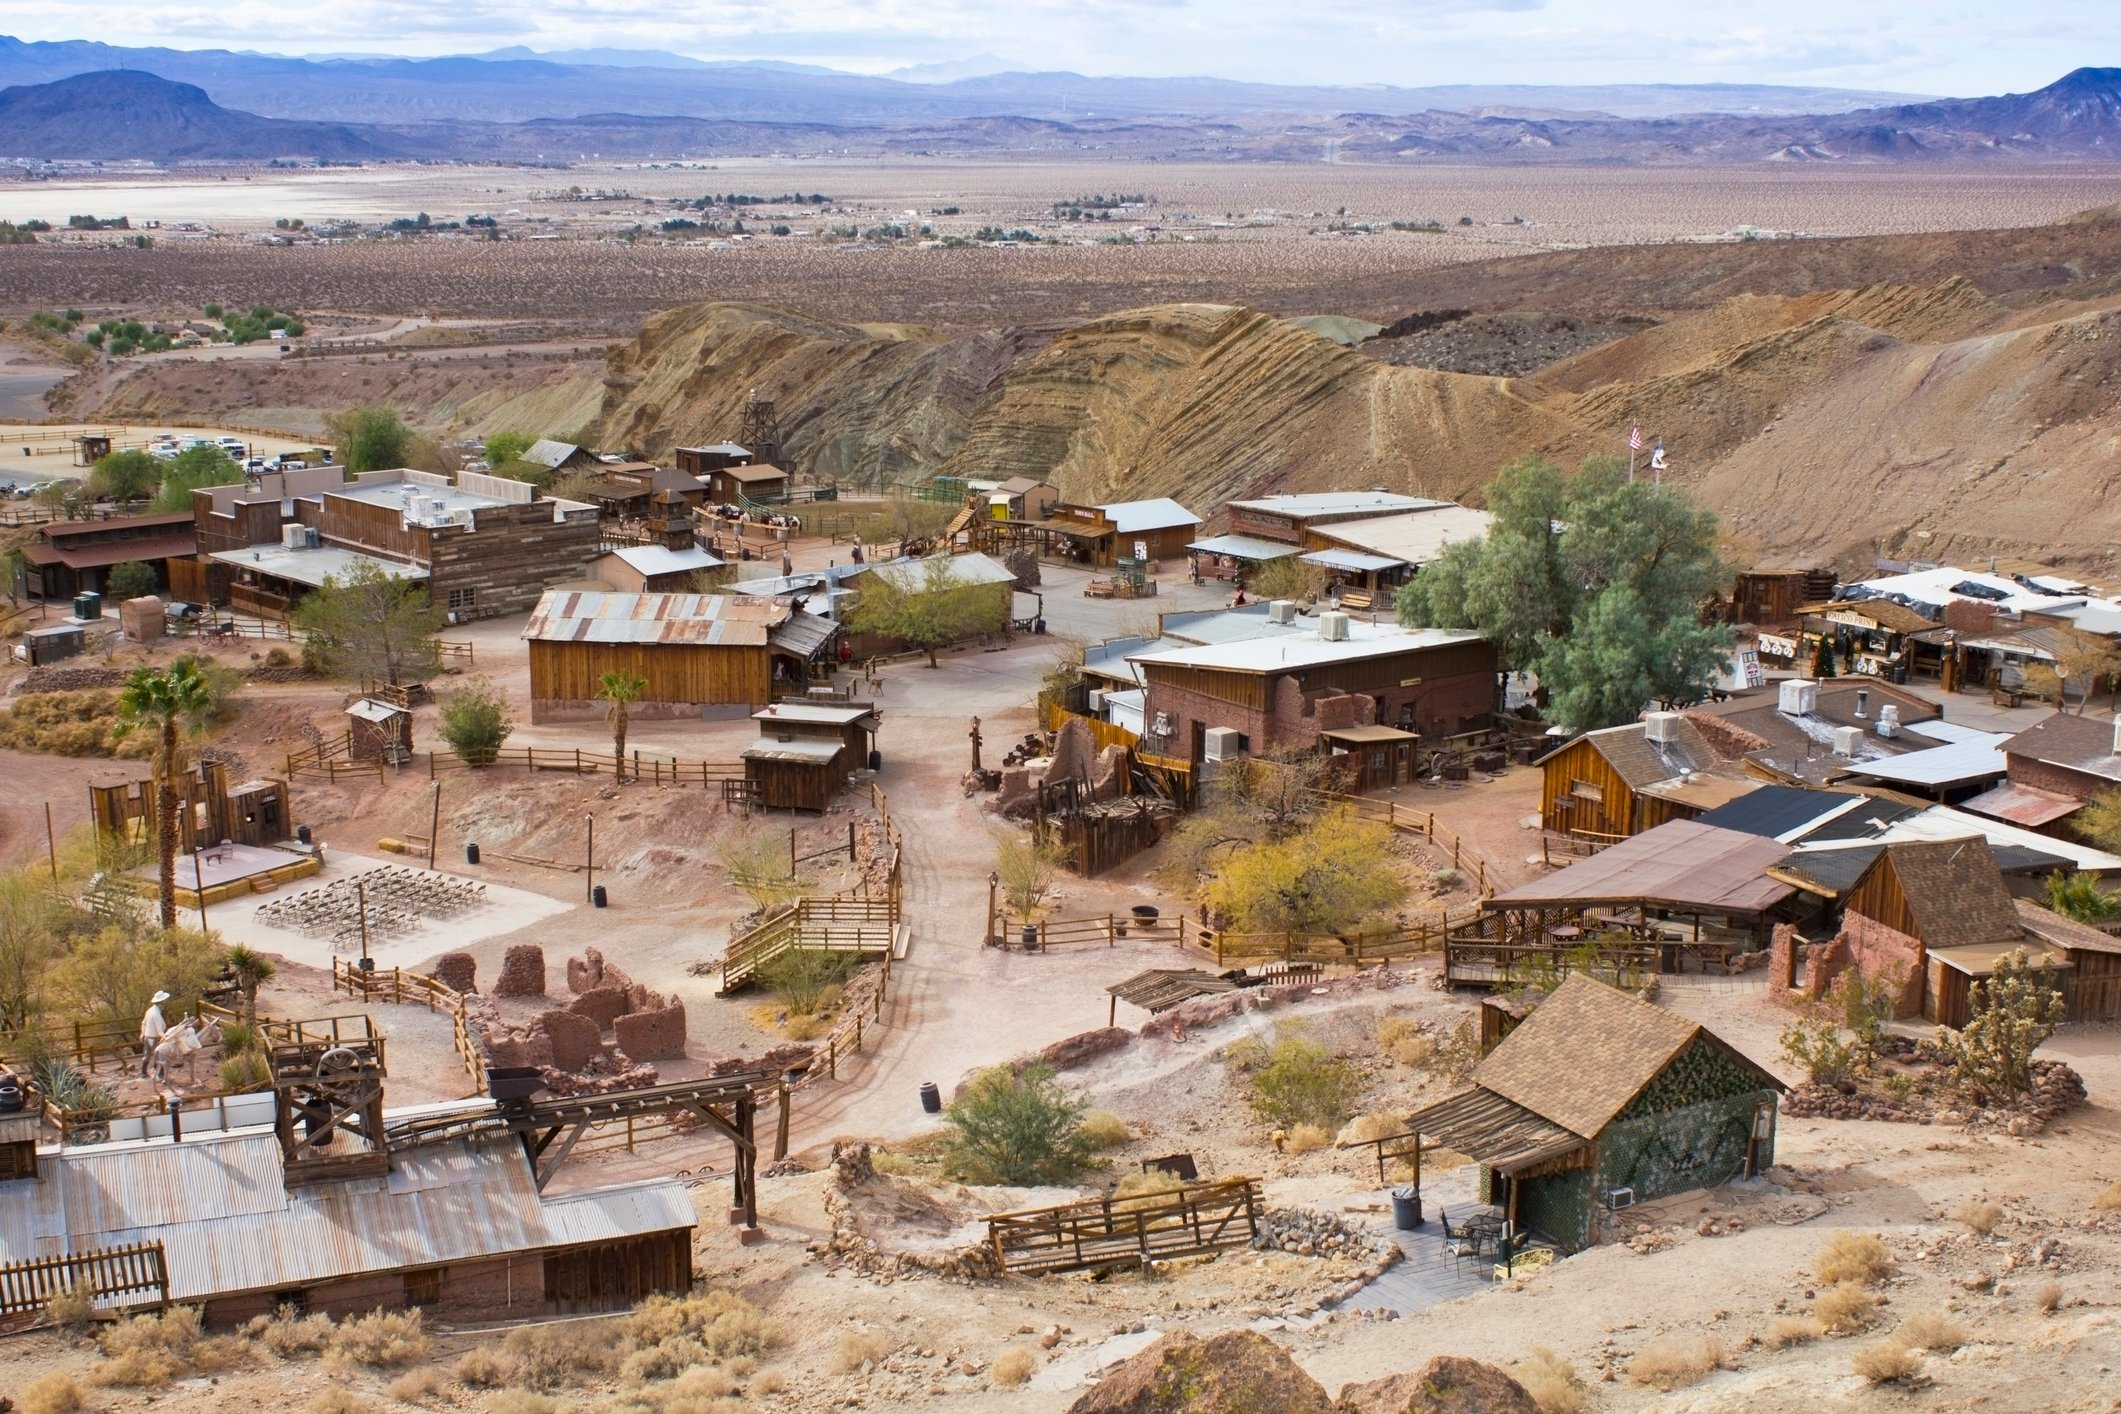 Aerial view of the buildings in Calico Ghost Town.